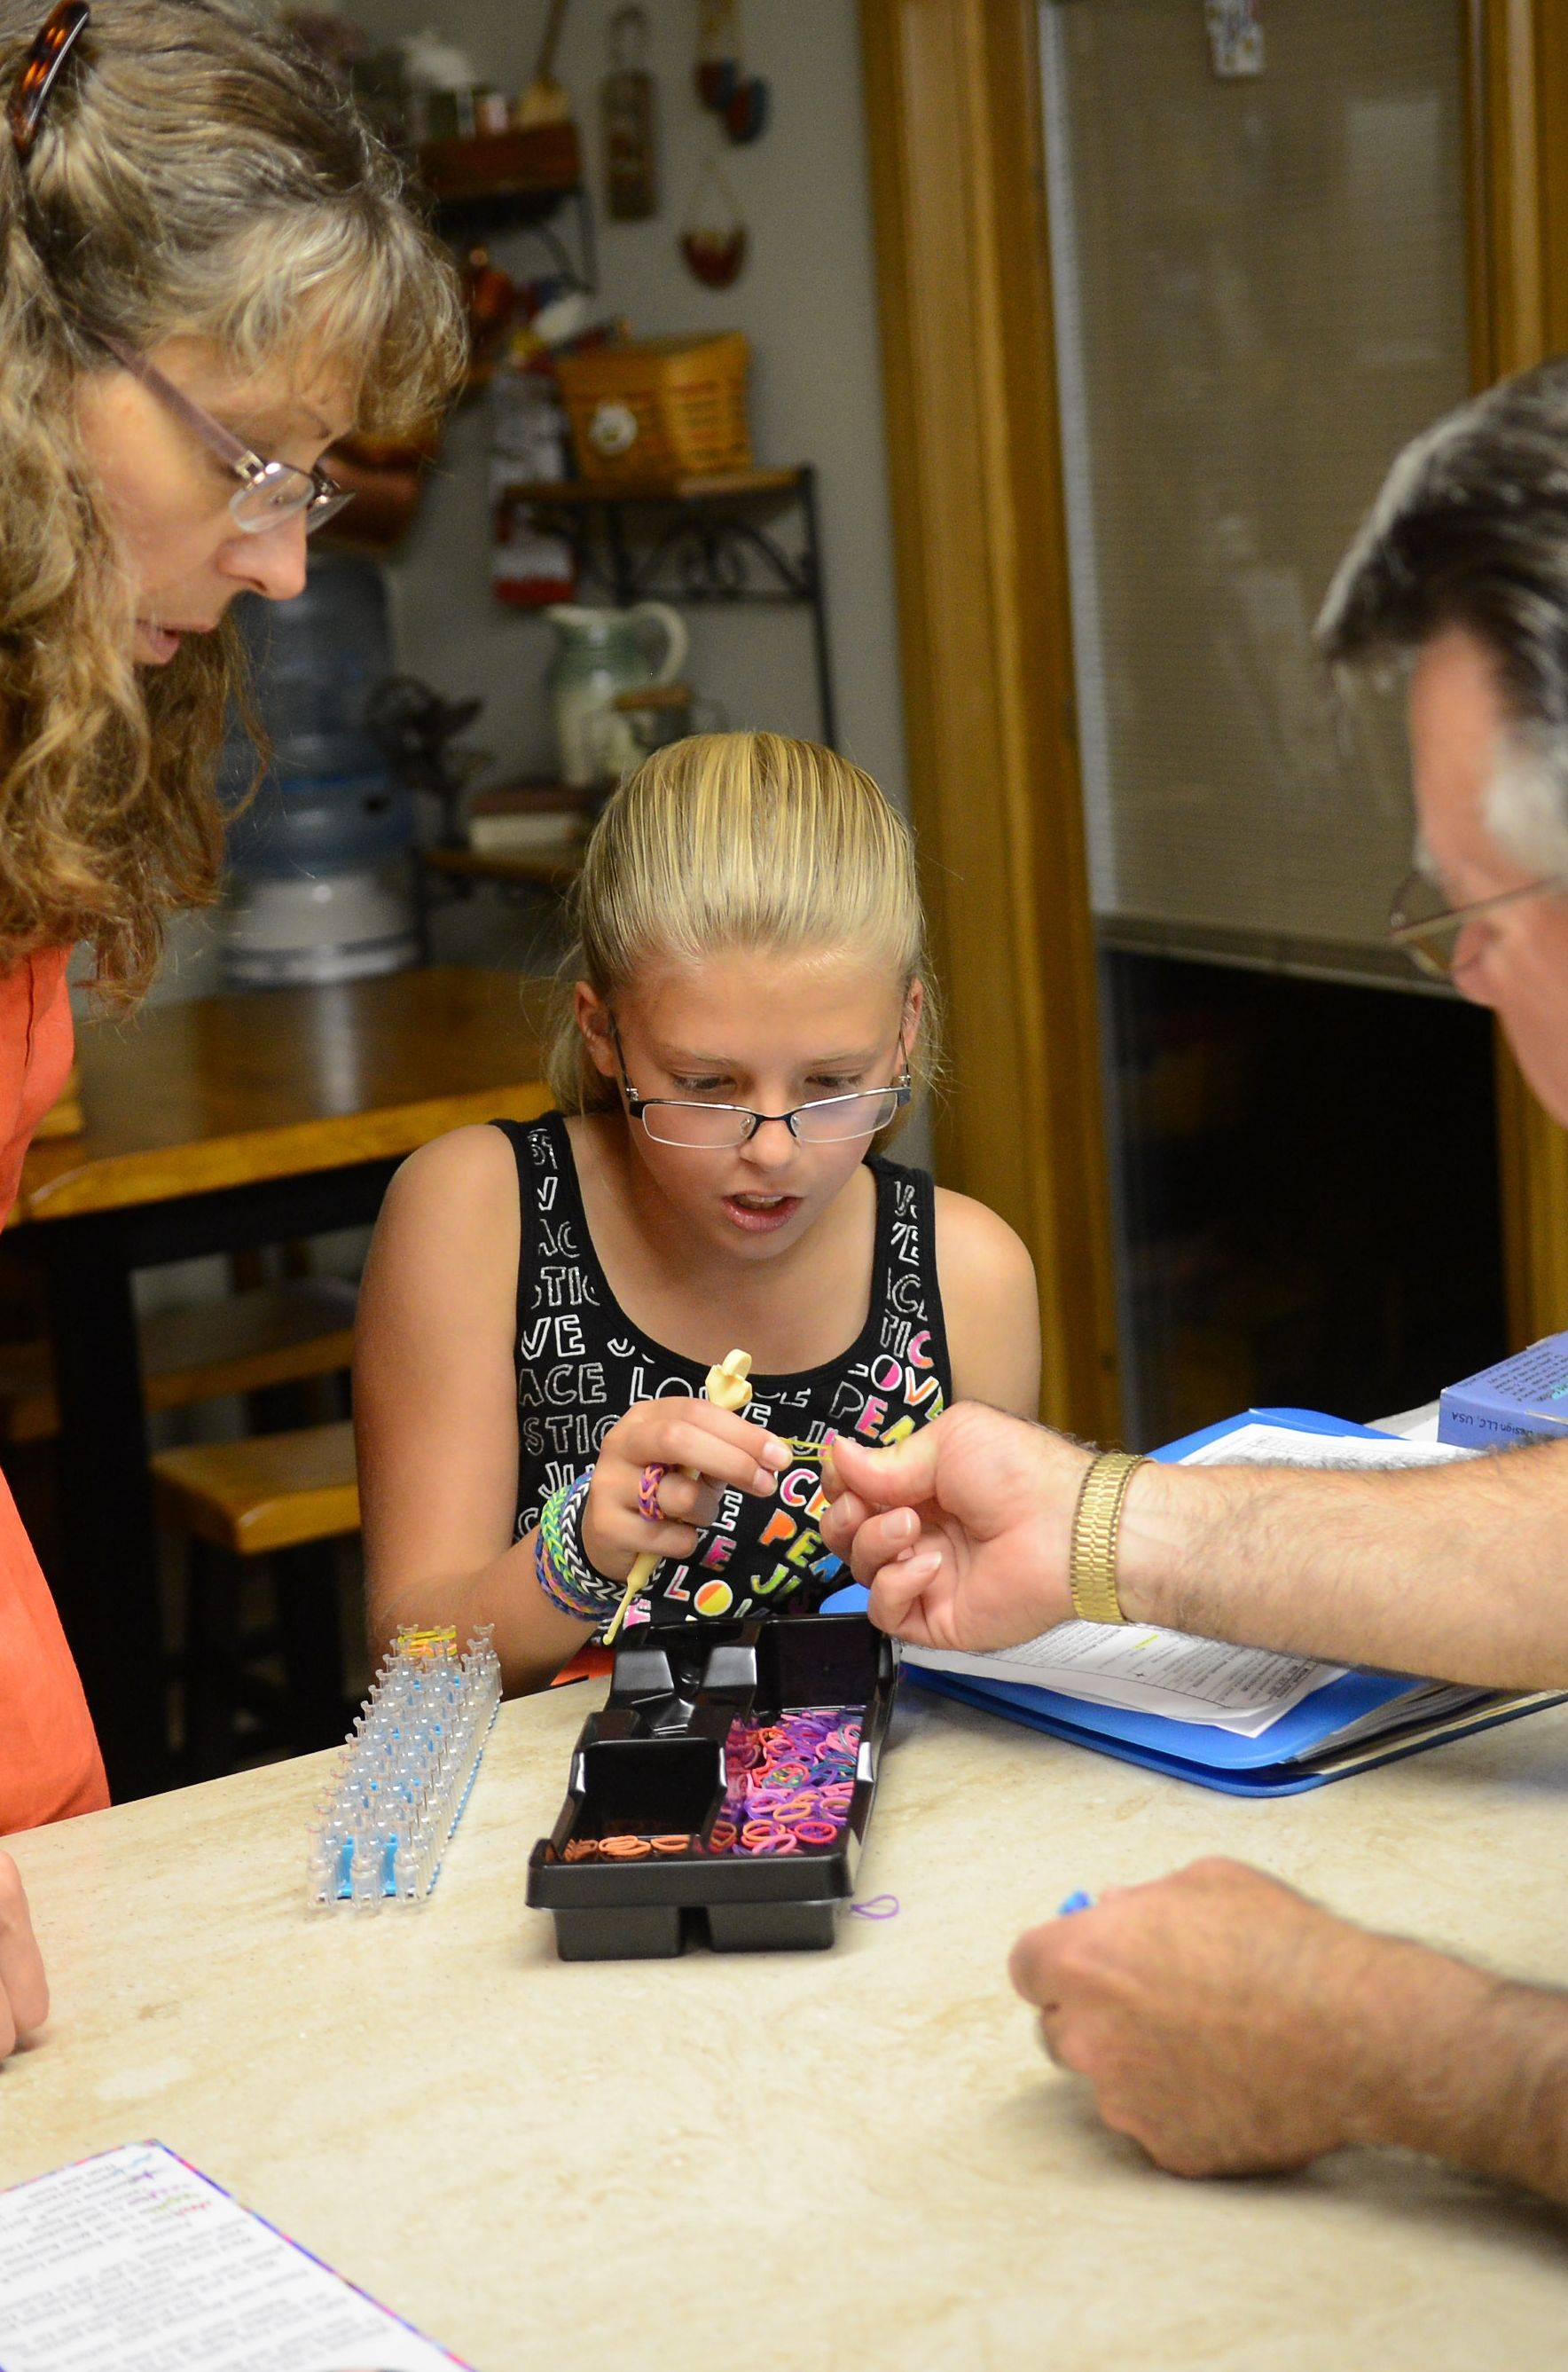 Olivia McMeins, center, makes rubber band bracelets with assistance from her grandparents, Michael and Kathy, at their home in East Dundee. The McMeinses have been raising their granddaughter since their daughter's death years ago when Olivia was very young.